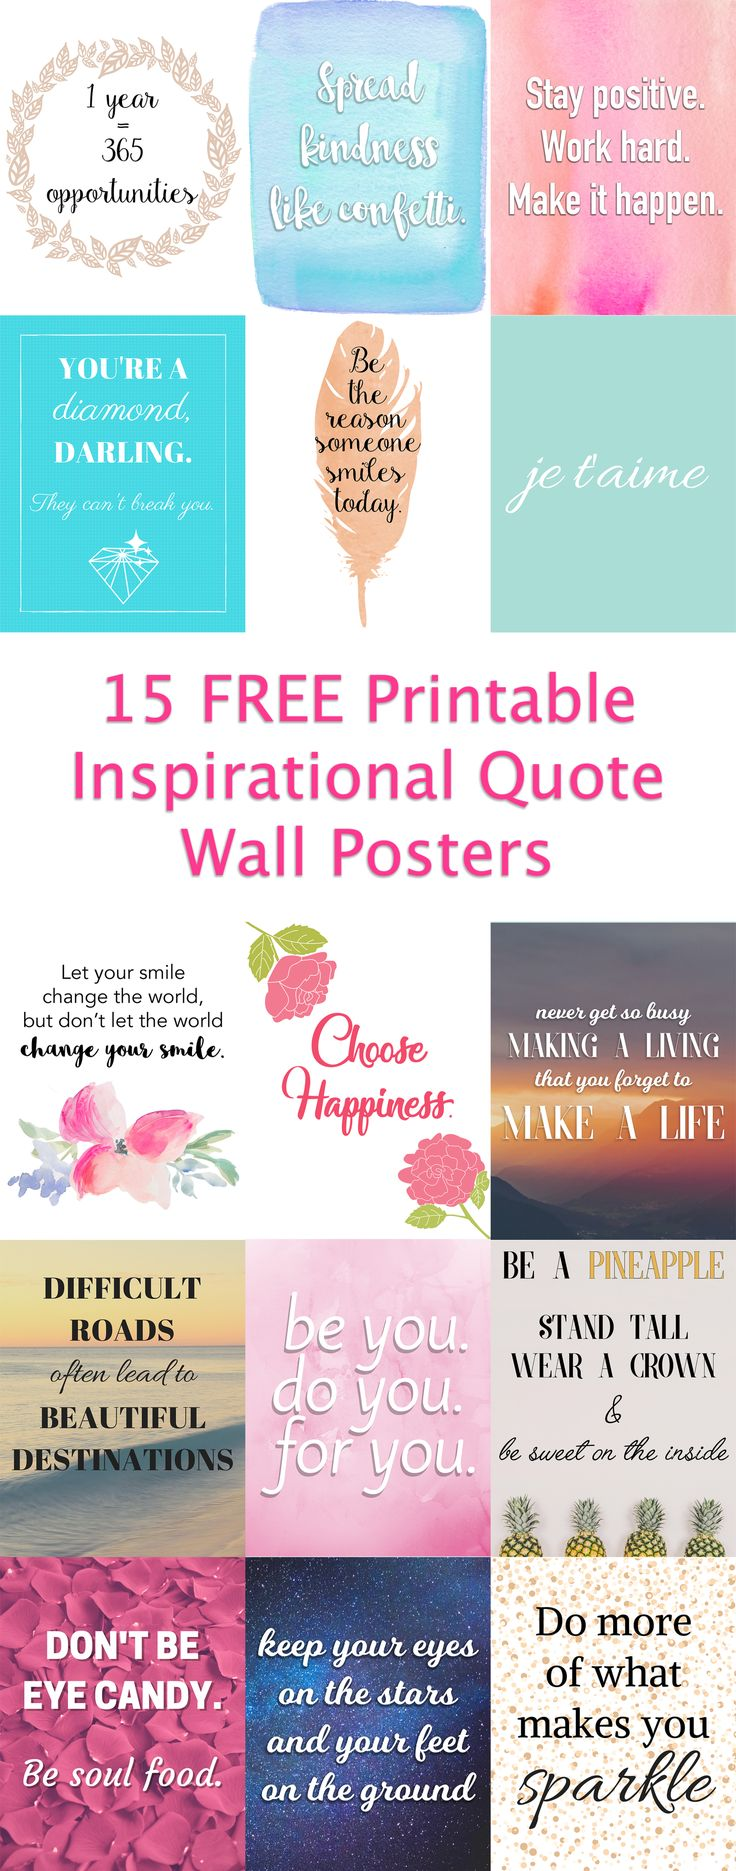 I created 15 FREE printable inspirational quote posters